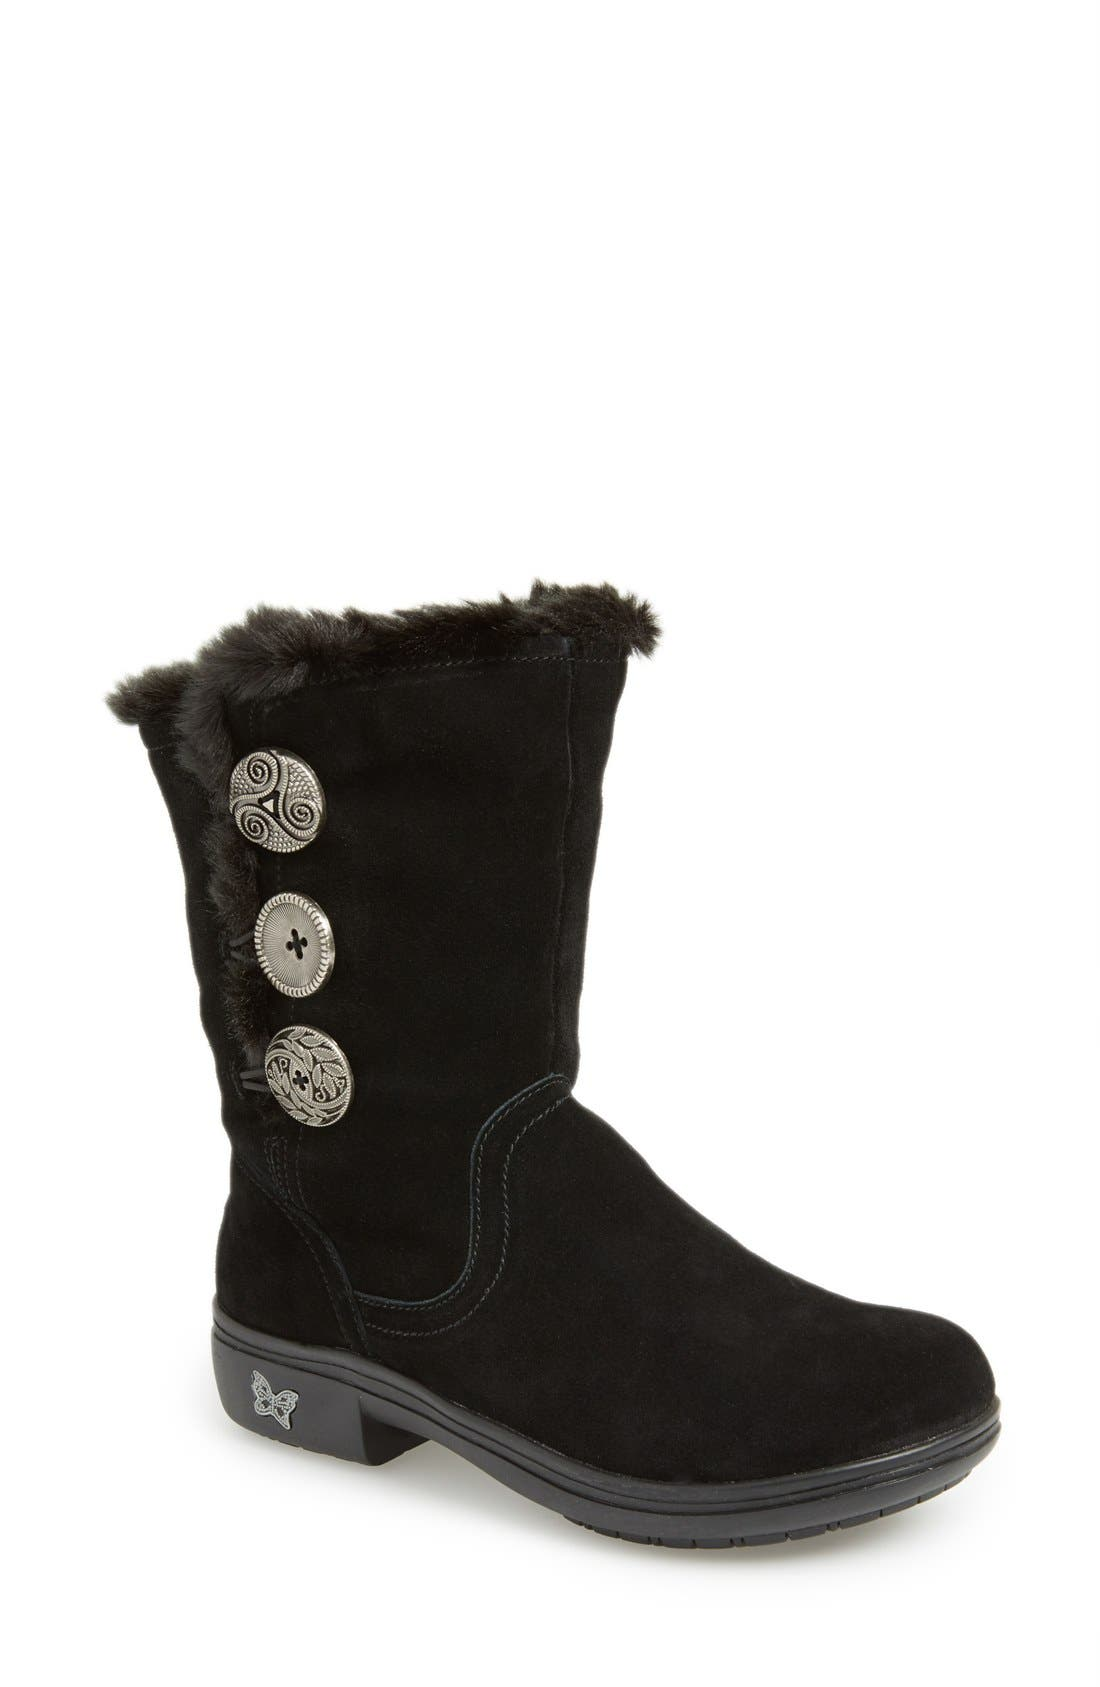 'Nanook' Suede Boot,                             Main thumbnail 1, color,                             001